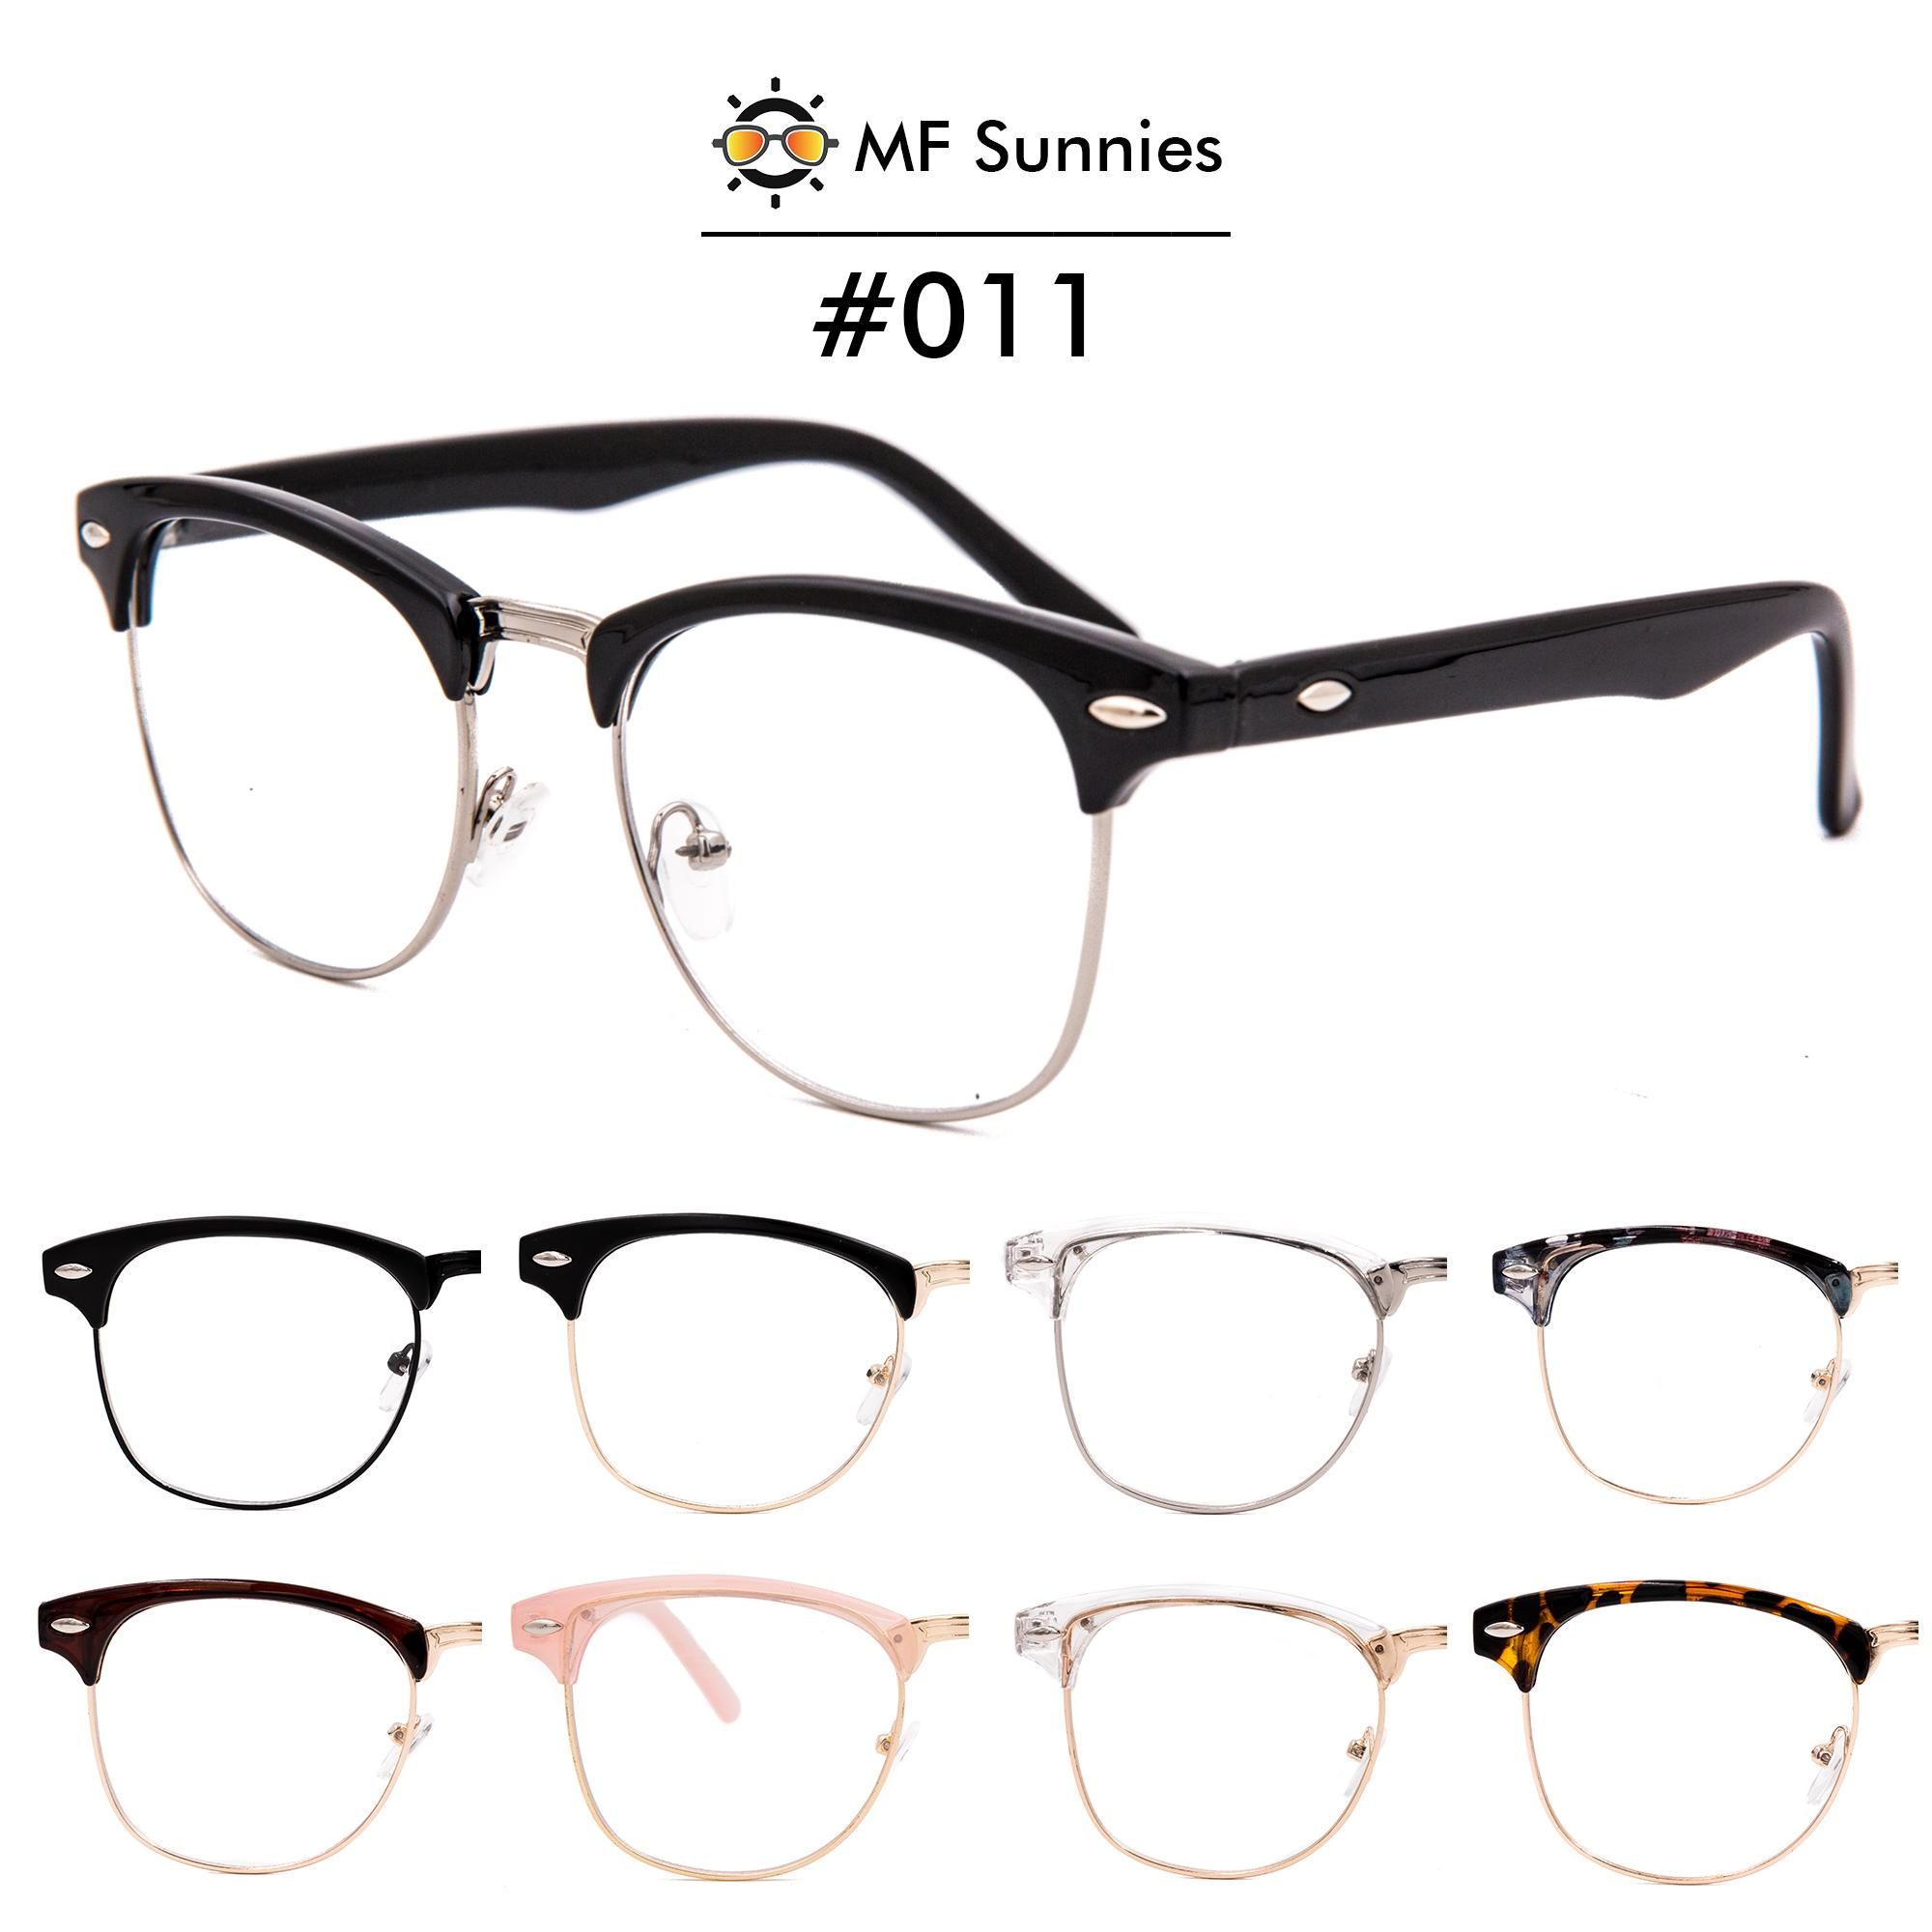 e7e130b227fe MFSunnies Clubmaster Computer Anti Radiation Blue light Classic Metal  Hinges High quality acetate frame